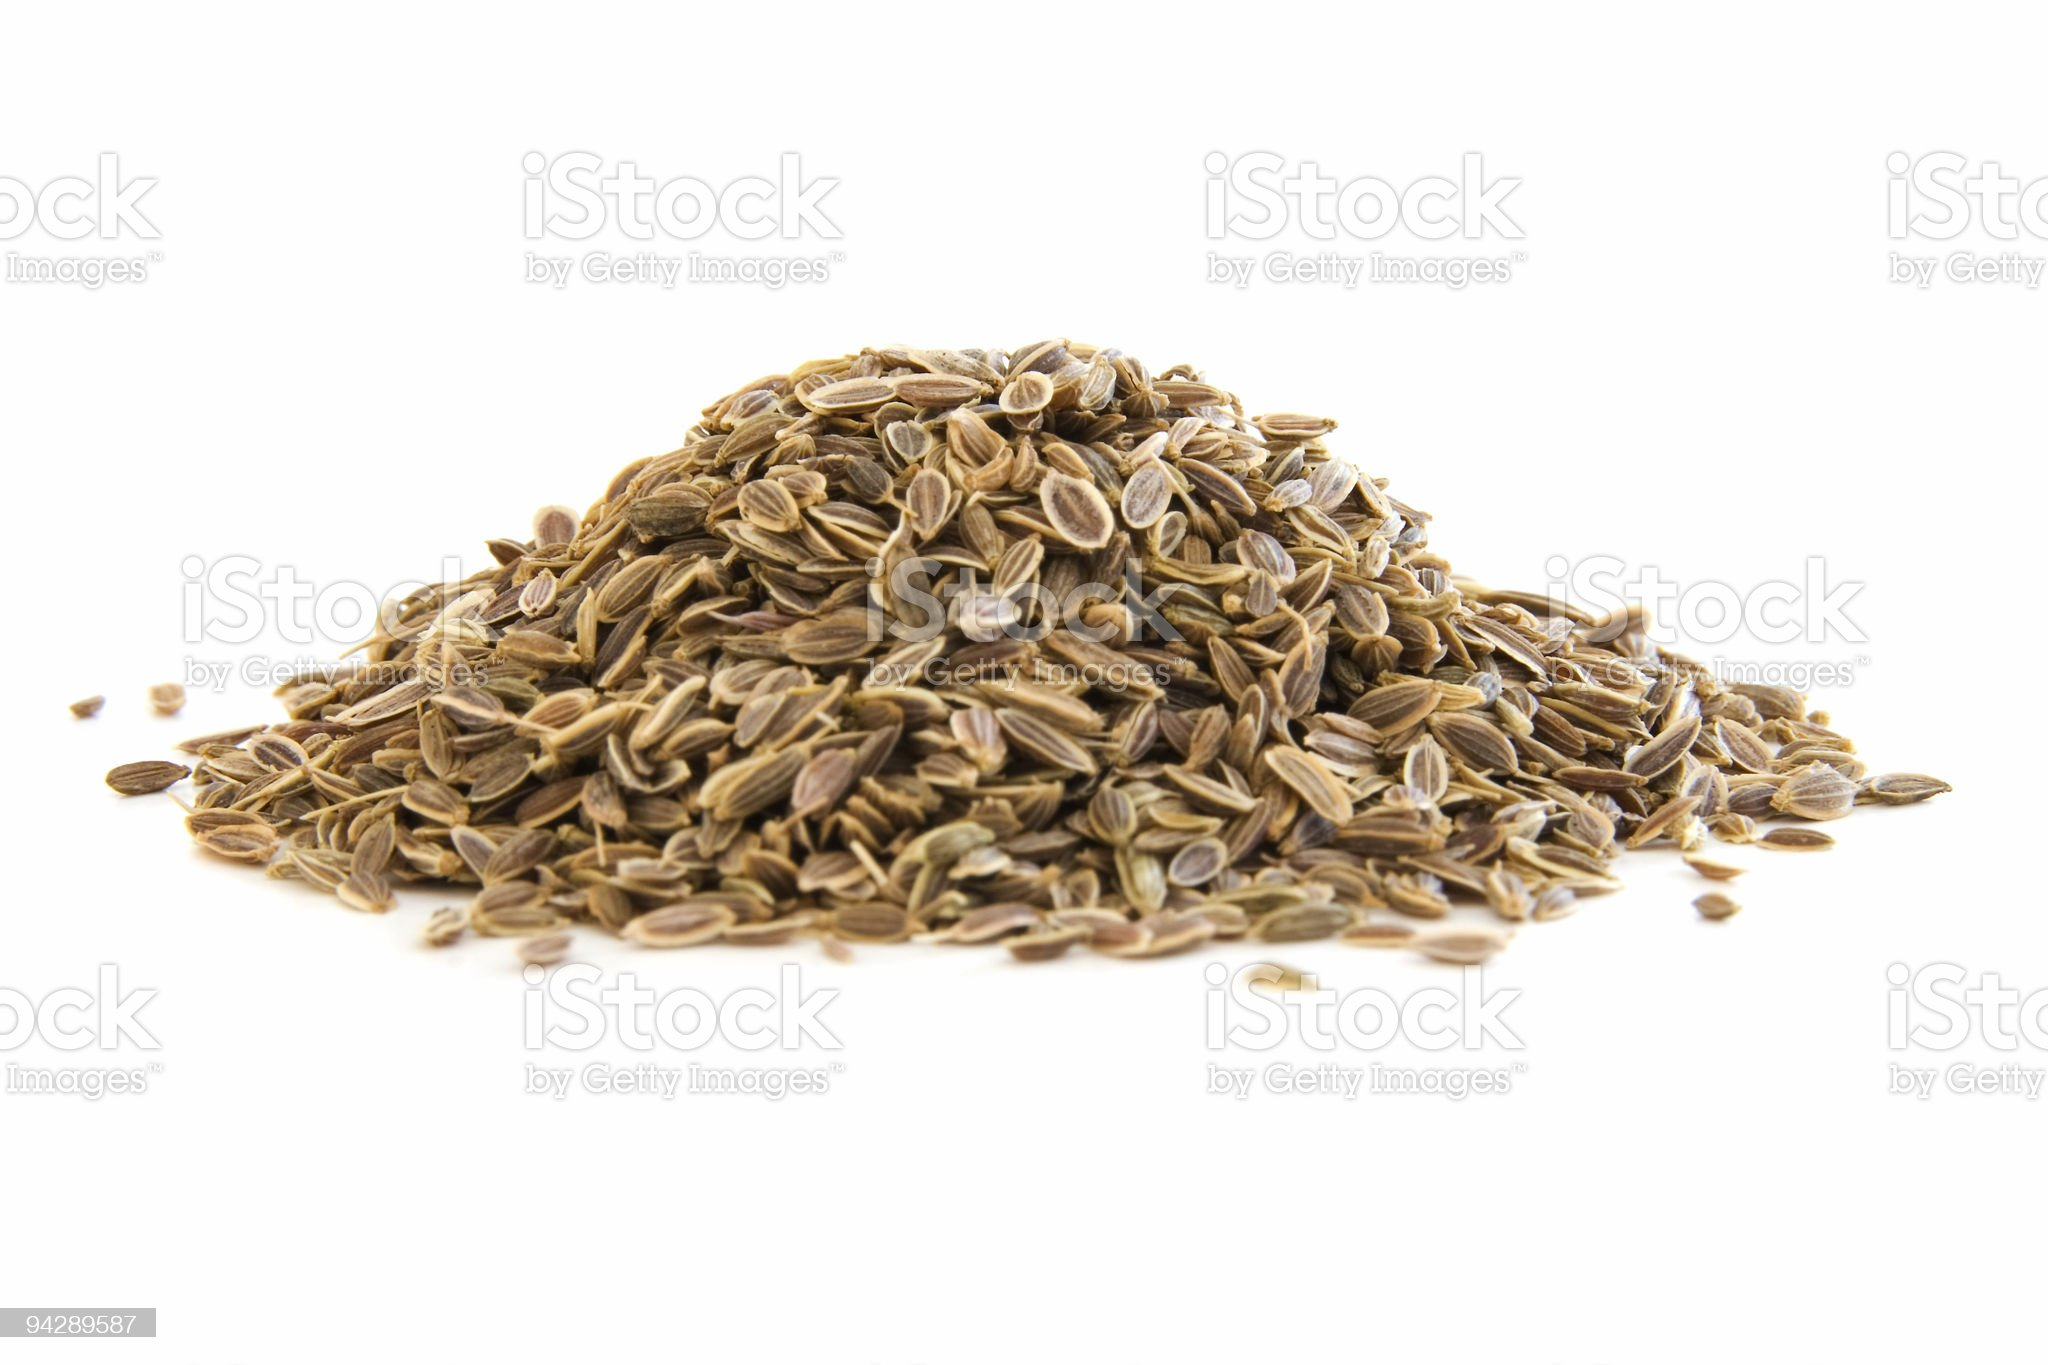 Pile of dill seeds on white royalty-free stock photo